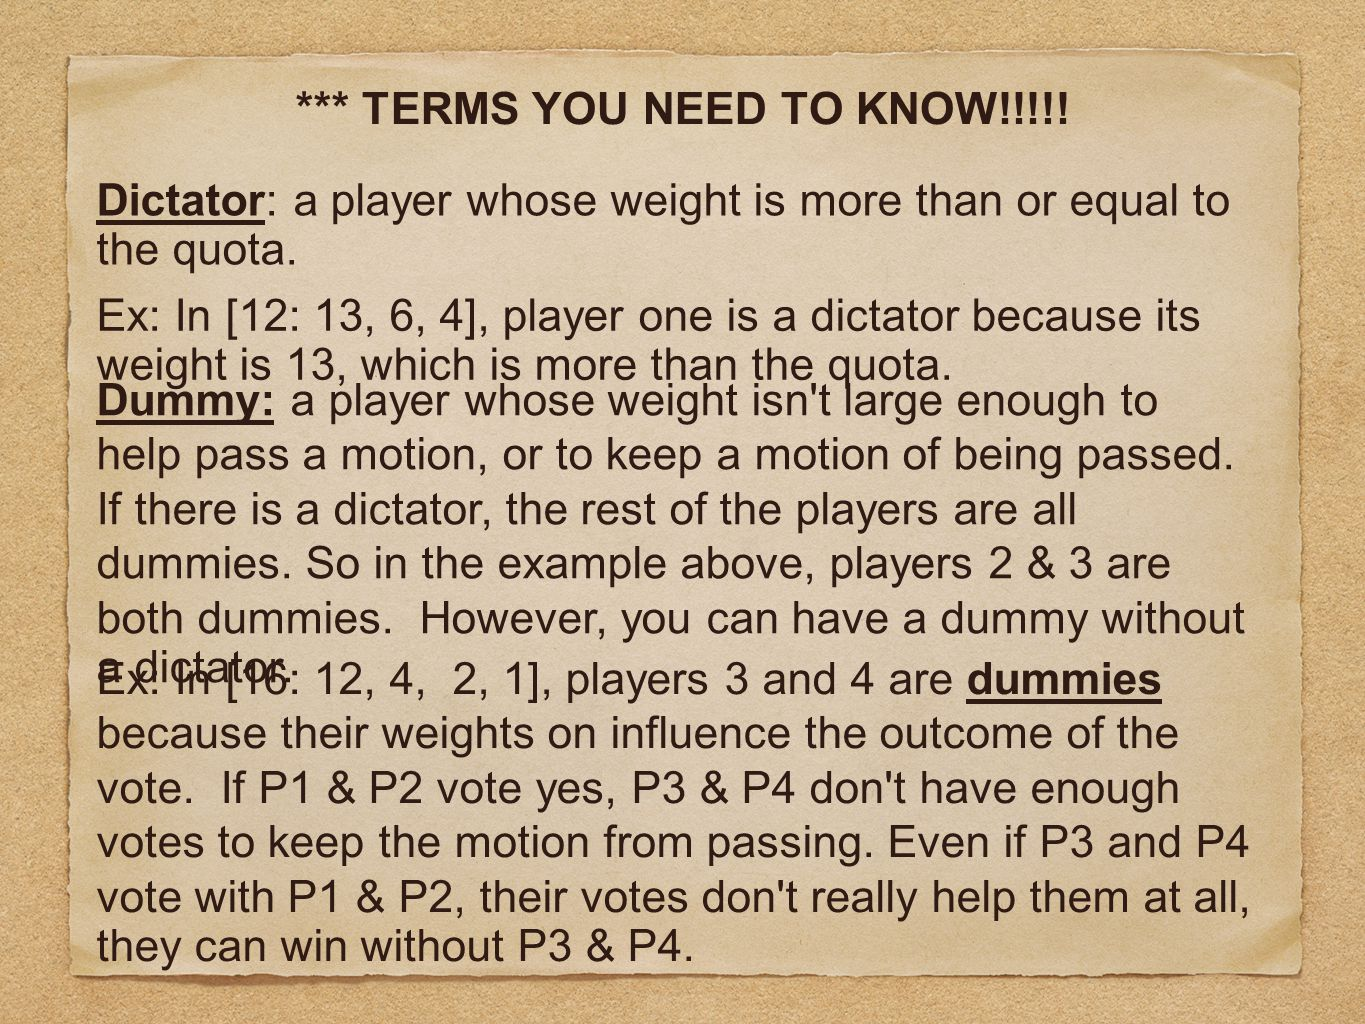 *** TERMS YOU NEED TO KNOW!!!!! Dictator: a player whose weight is more than or equal to the quota. Dummy: a player whose weight isn't large enough to